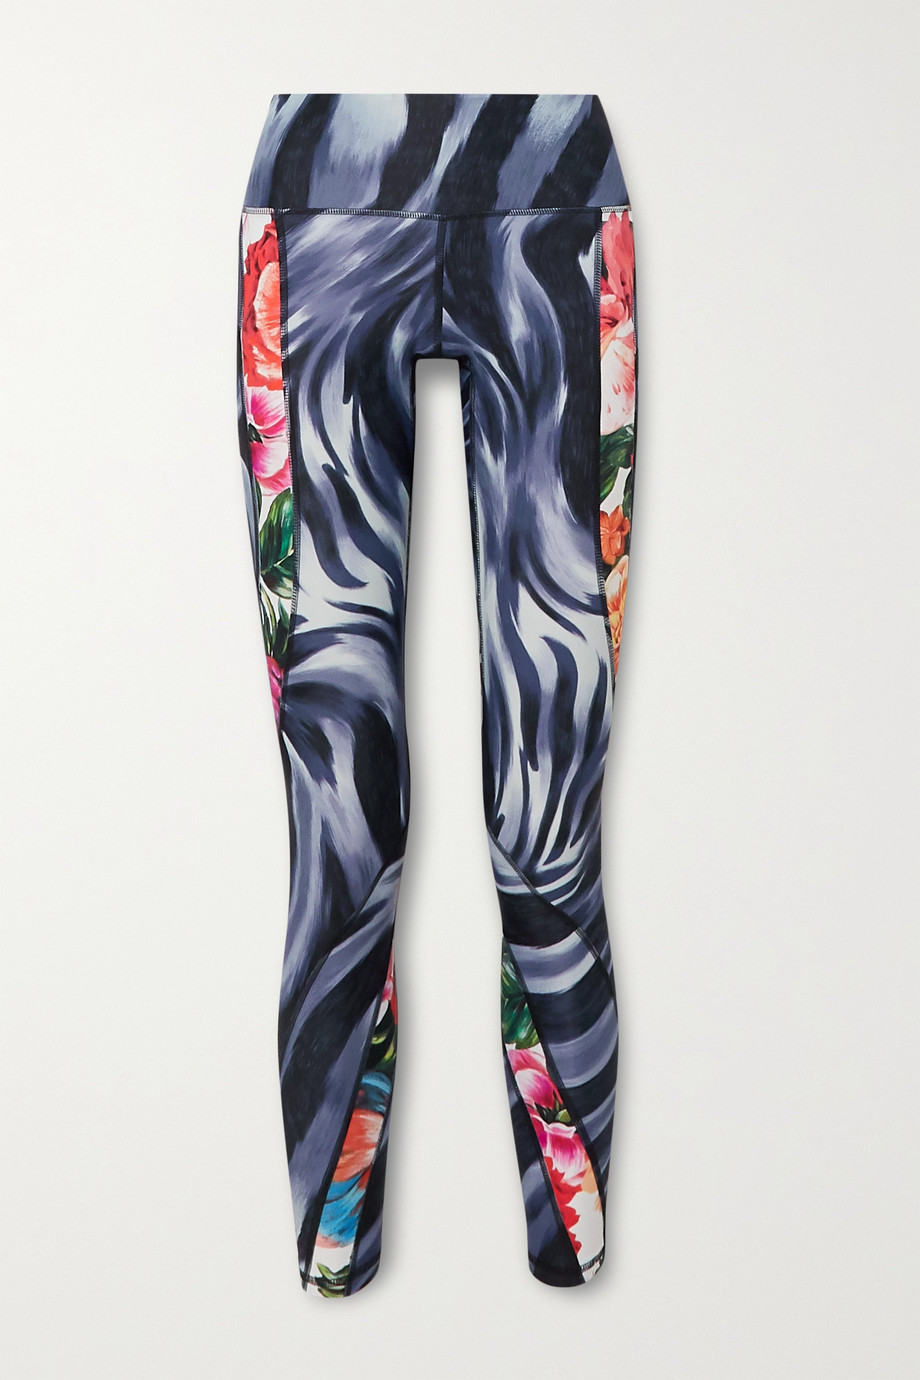 Twin Fantasy Paneled printed stretch leggings